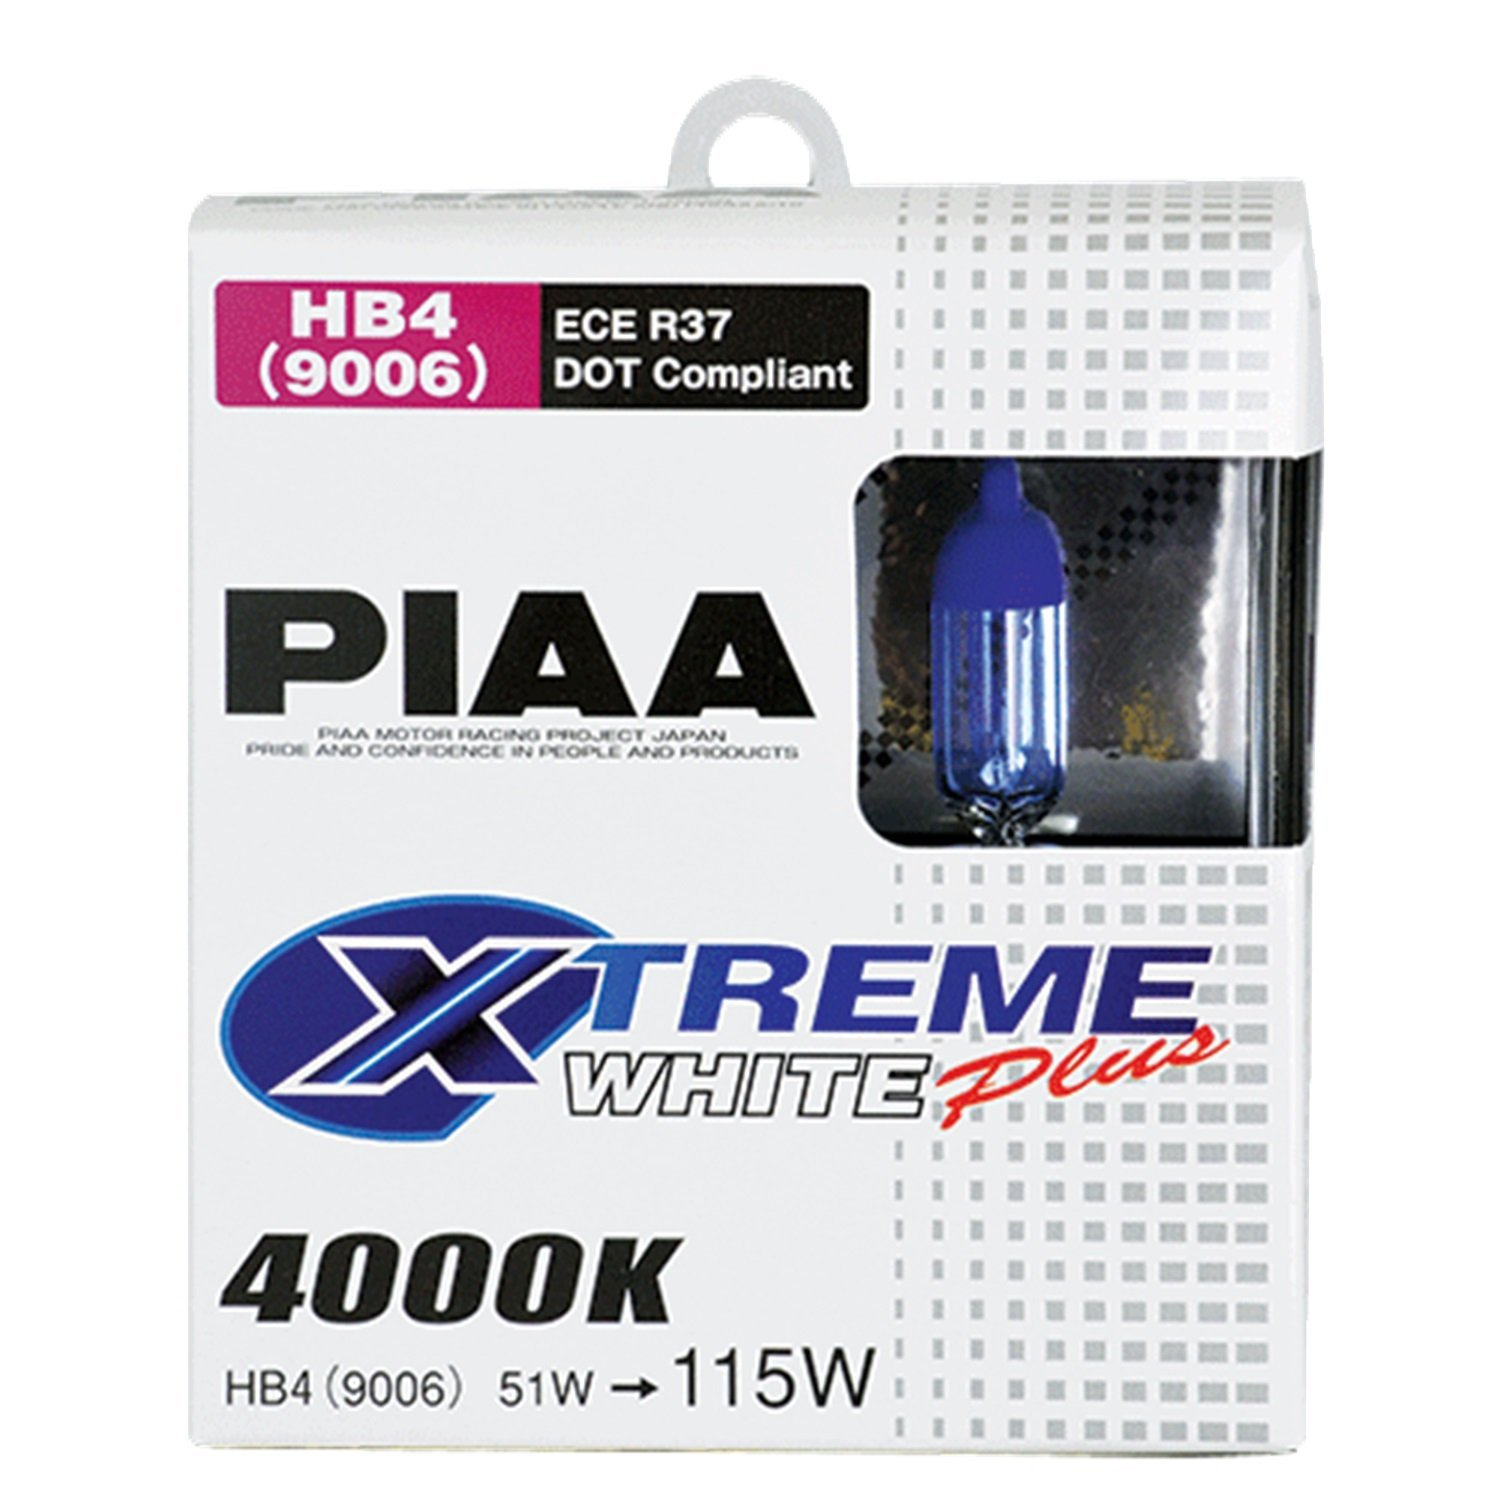 PIAA Xtreme White Plus Halogen Headlight Bulb